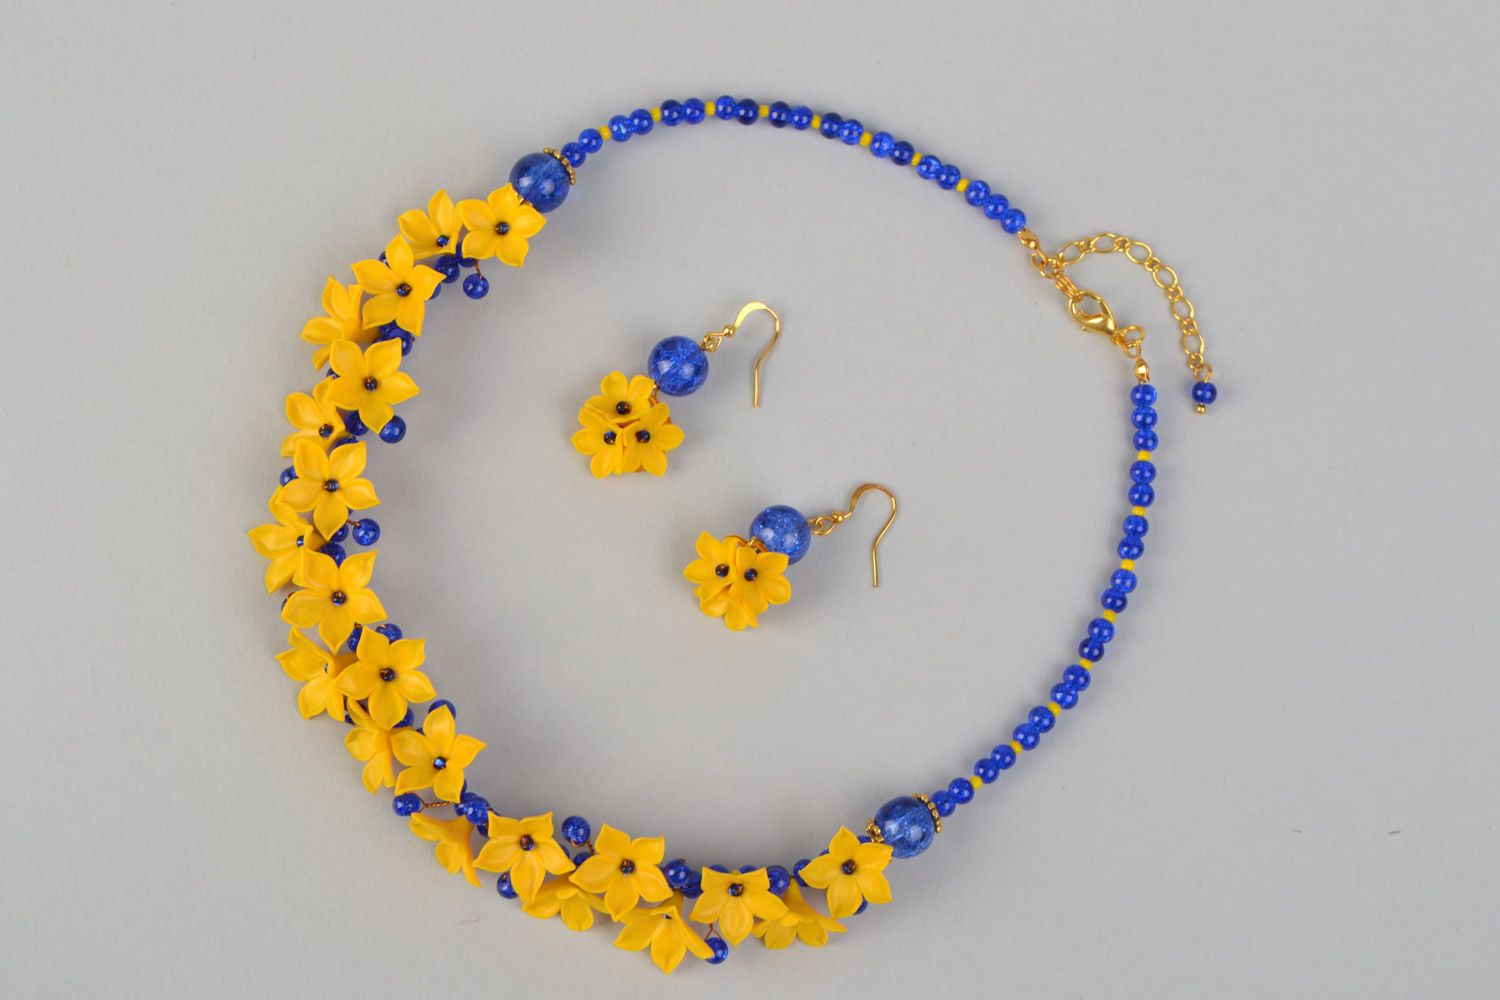 Polymer clay necklace and earrings set